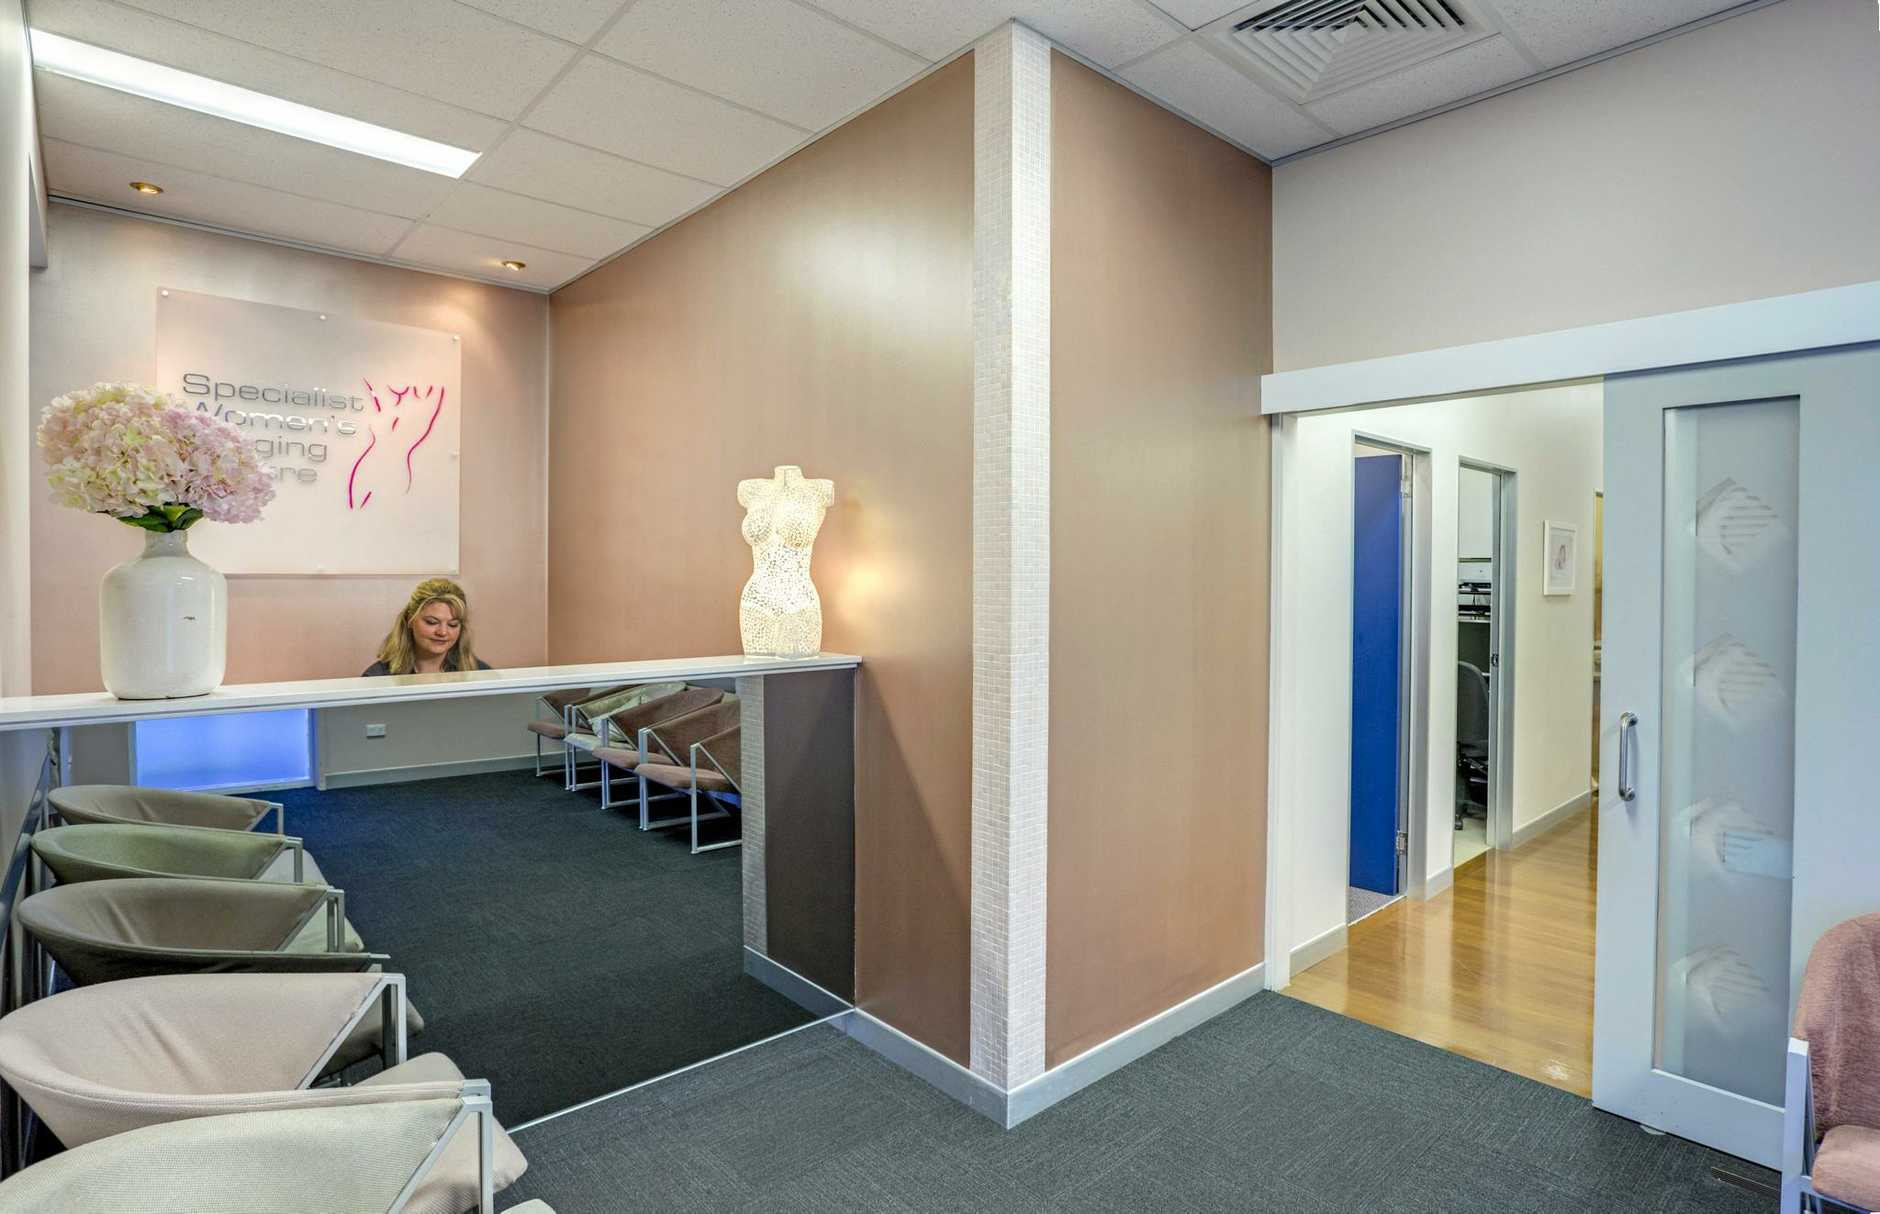 Our Specialist Women's Imaging Centre is dedicated to meeting the unique health needs of women on the Sunshine Coast in a caring and thoughtful environment.